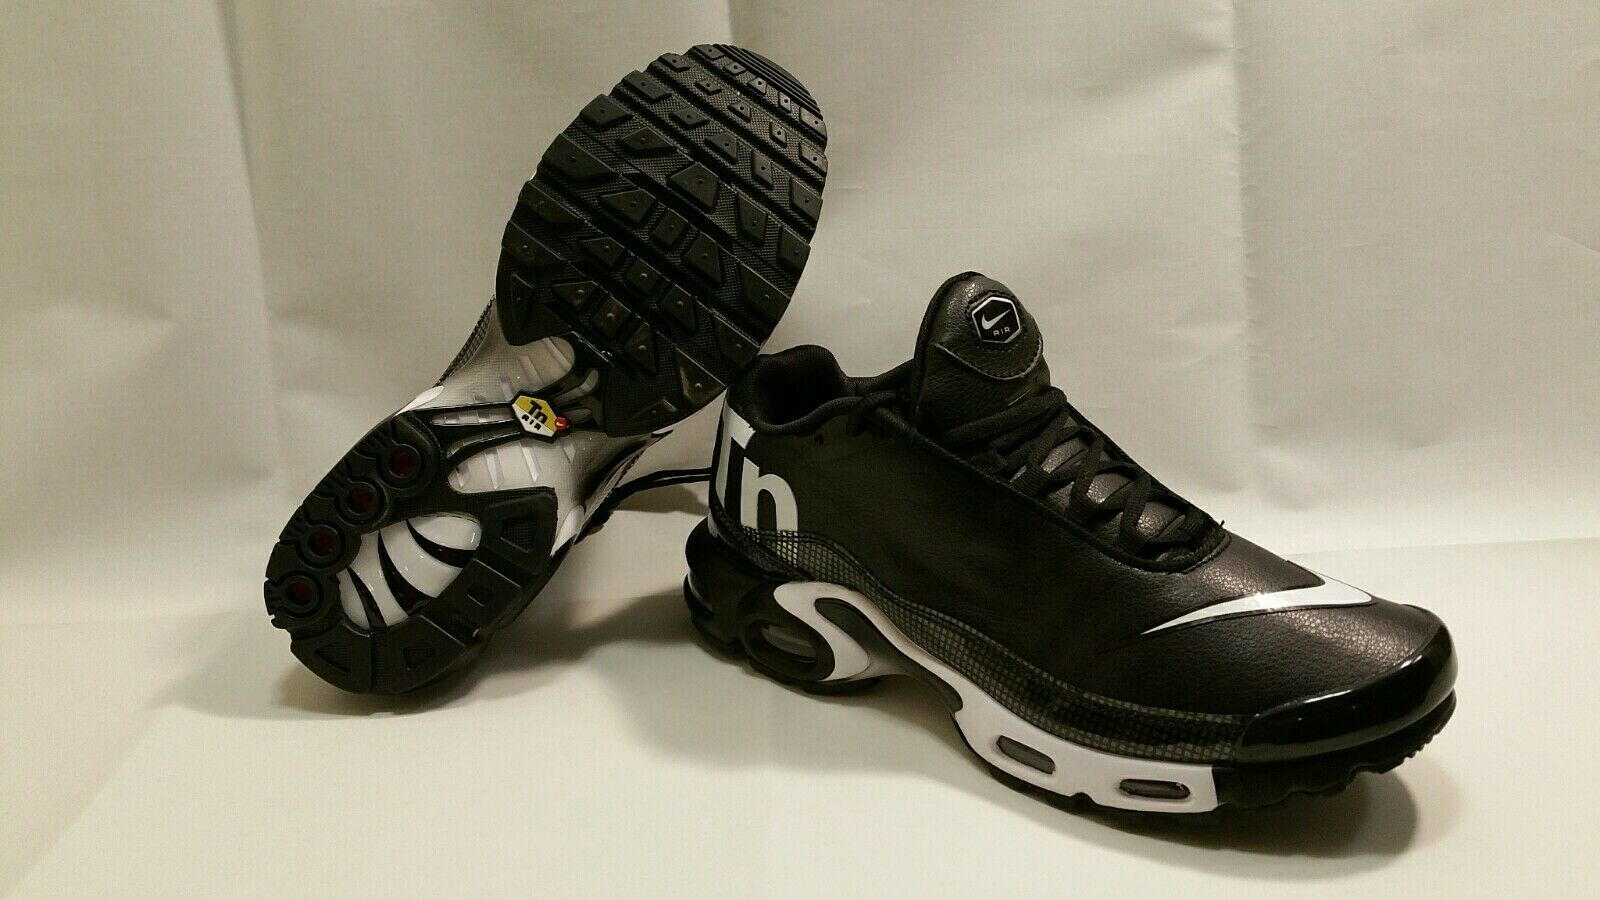 NIKE AIR MAX PLUS TN White Black New Running shoes Size US 12